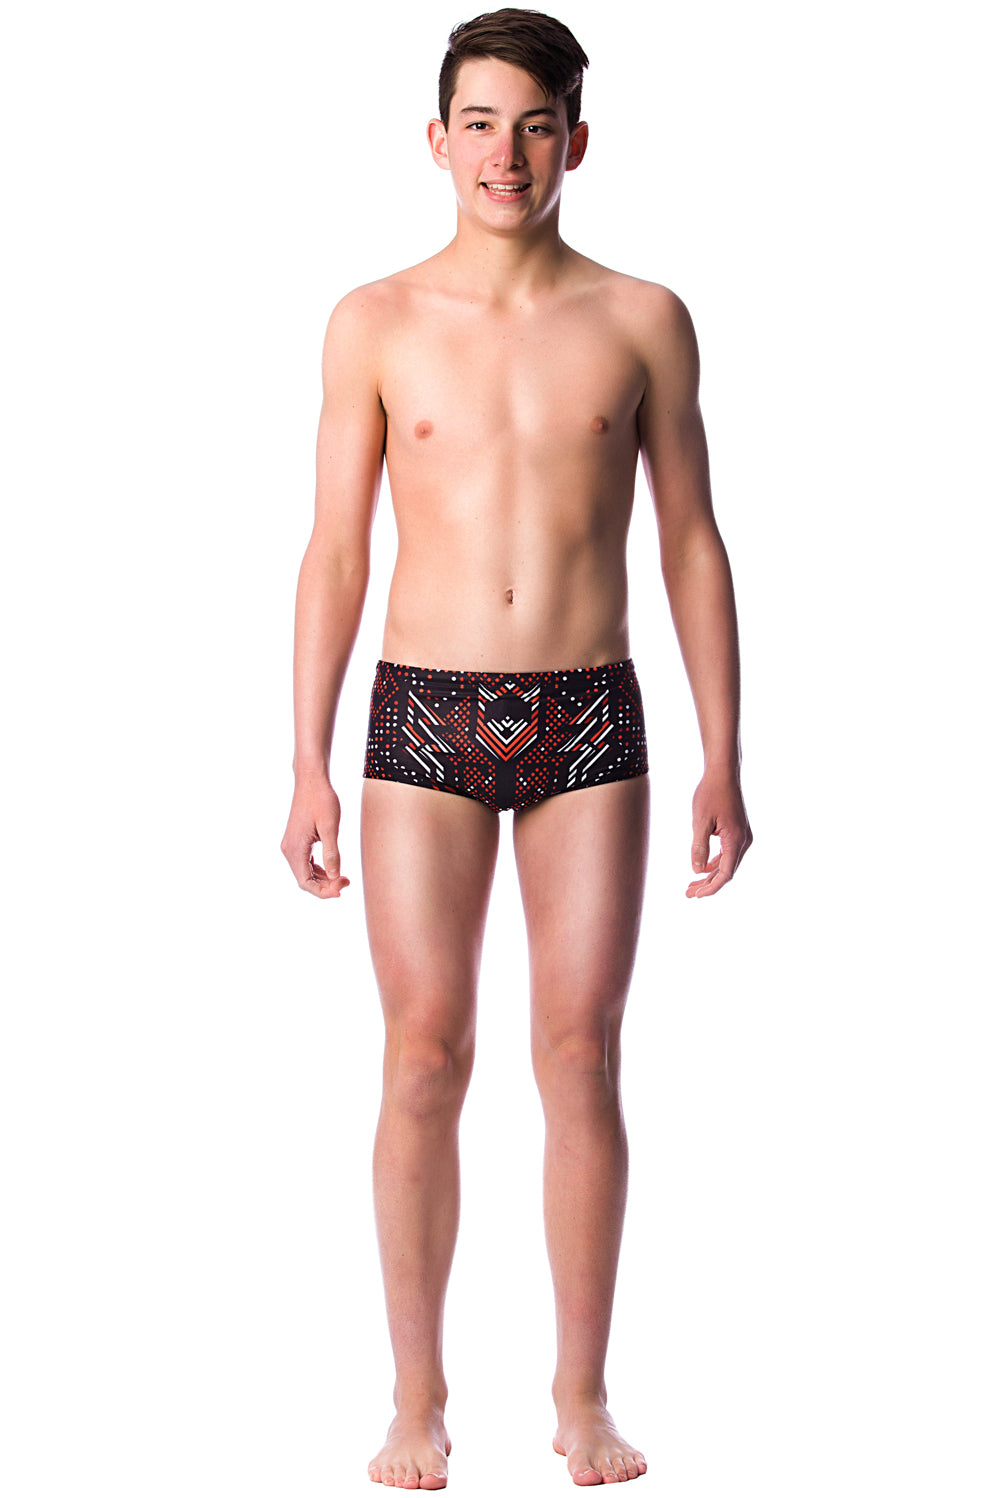 Blaze Boys Trunks - Shop Zealous Training Swimwear